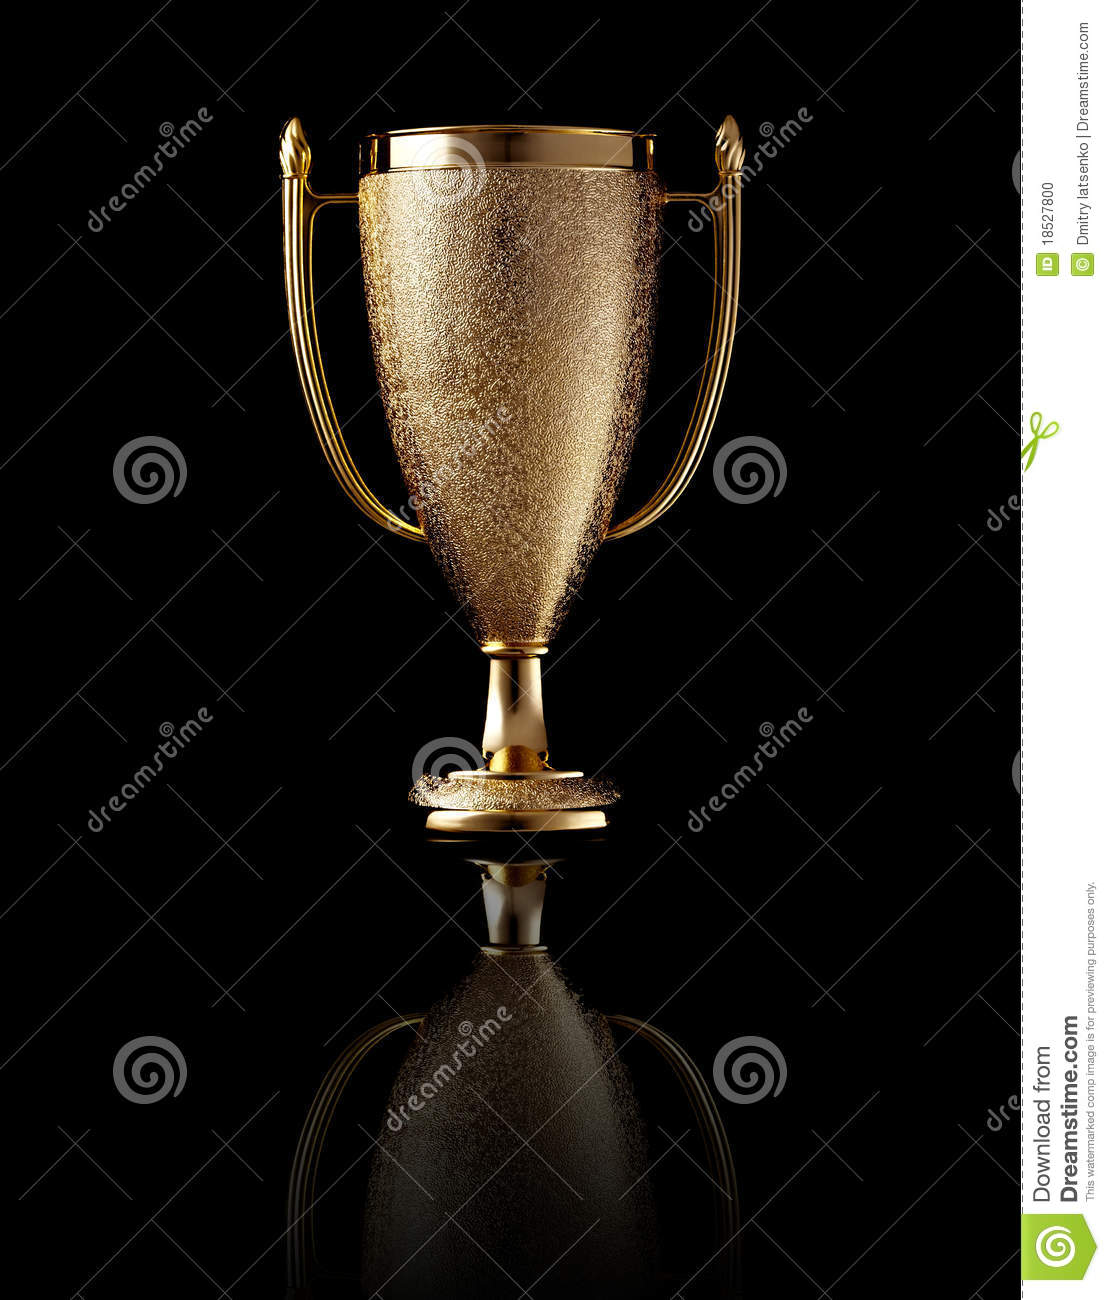 Gold Cup On Black Background Stock Photo - Image: 18527800